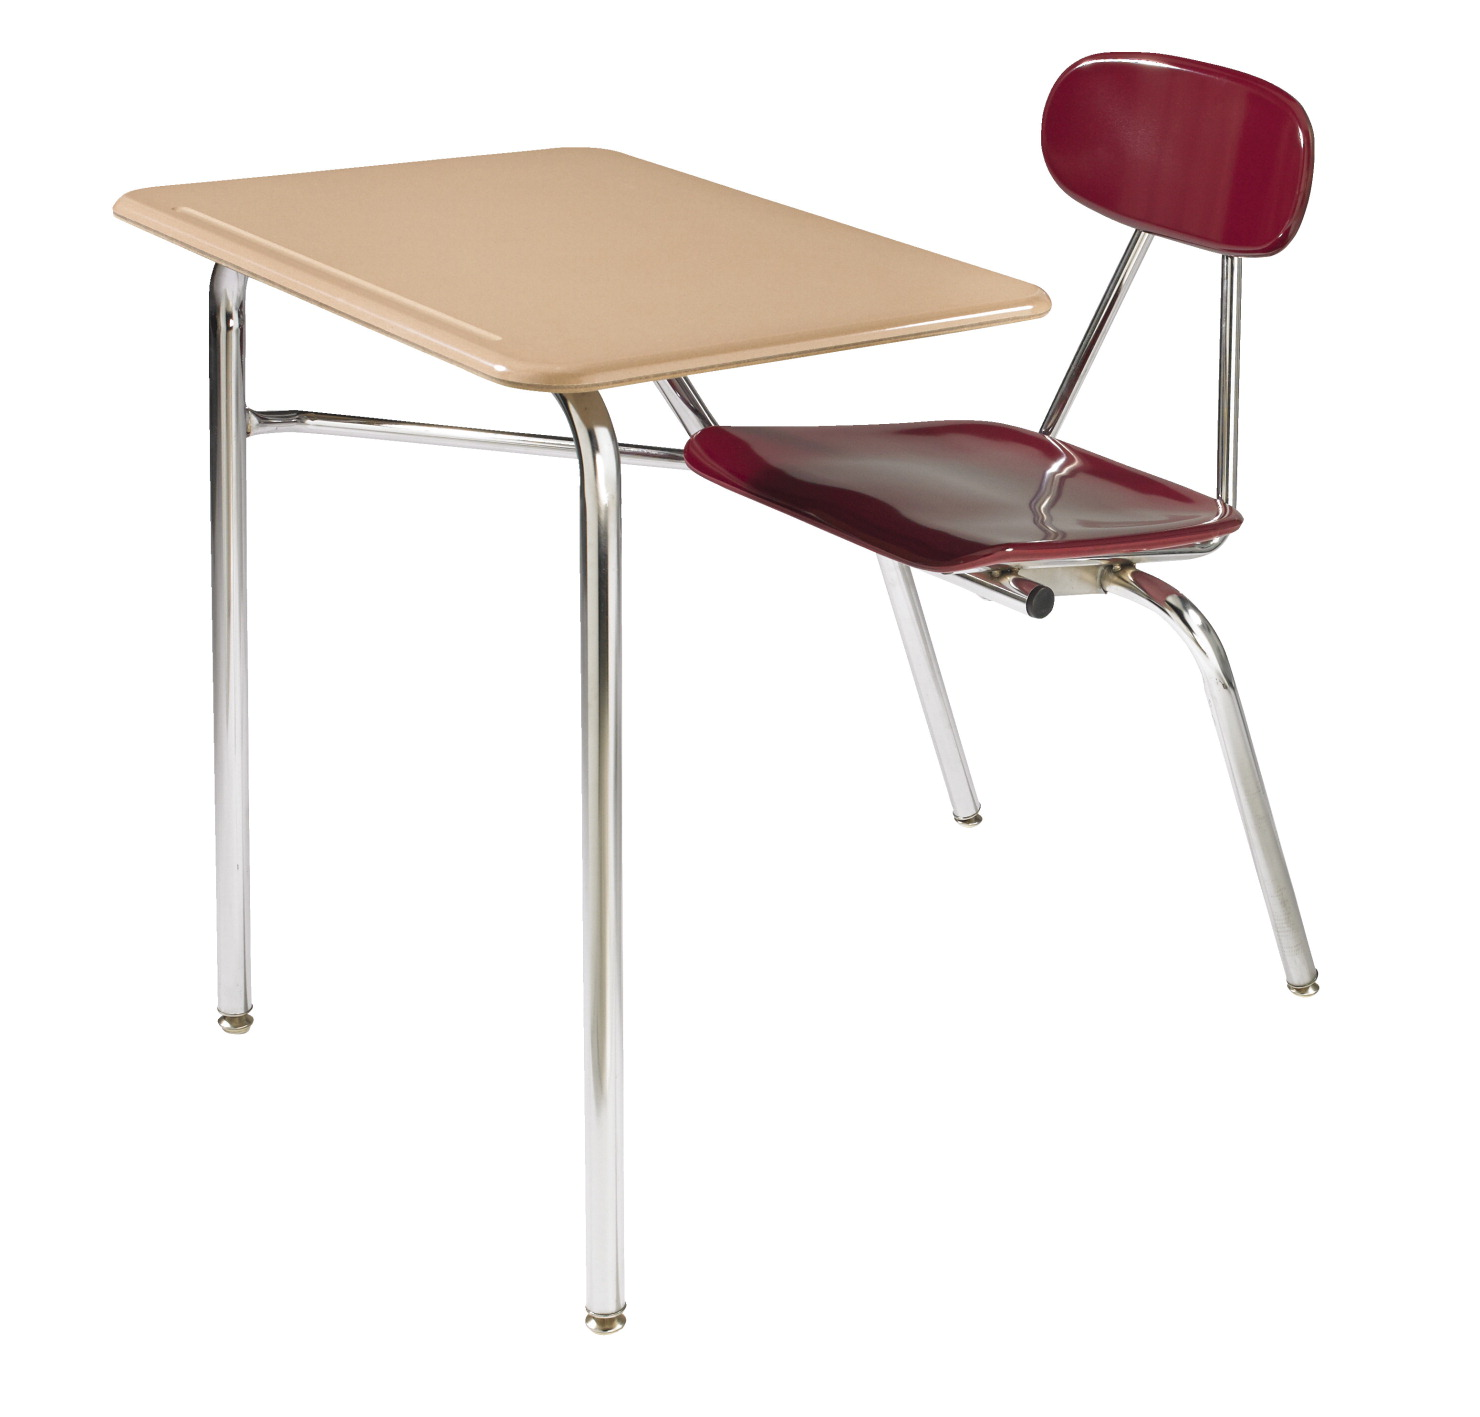 Royal Seating 4400 Combination Hard Plastic Top Desk, 18 x 24 Inch Top,  Chrome Frame, Various Options